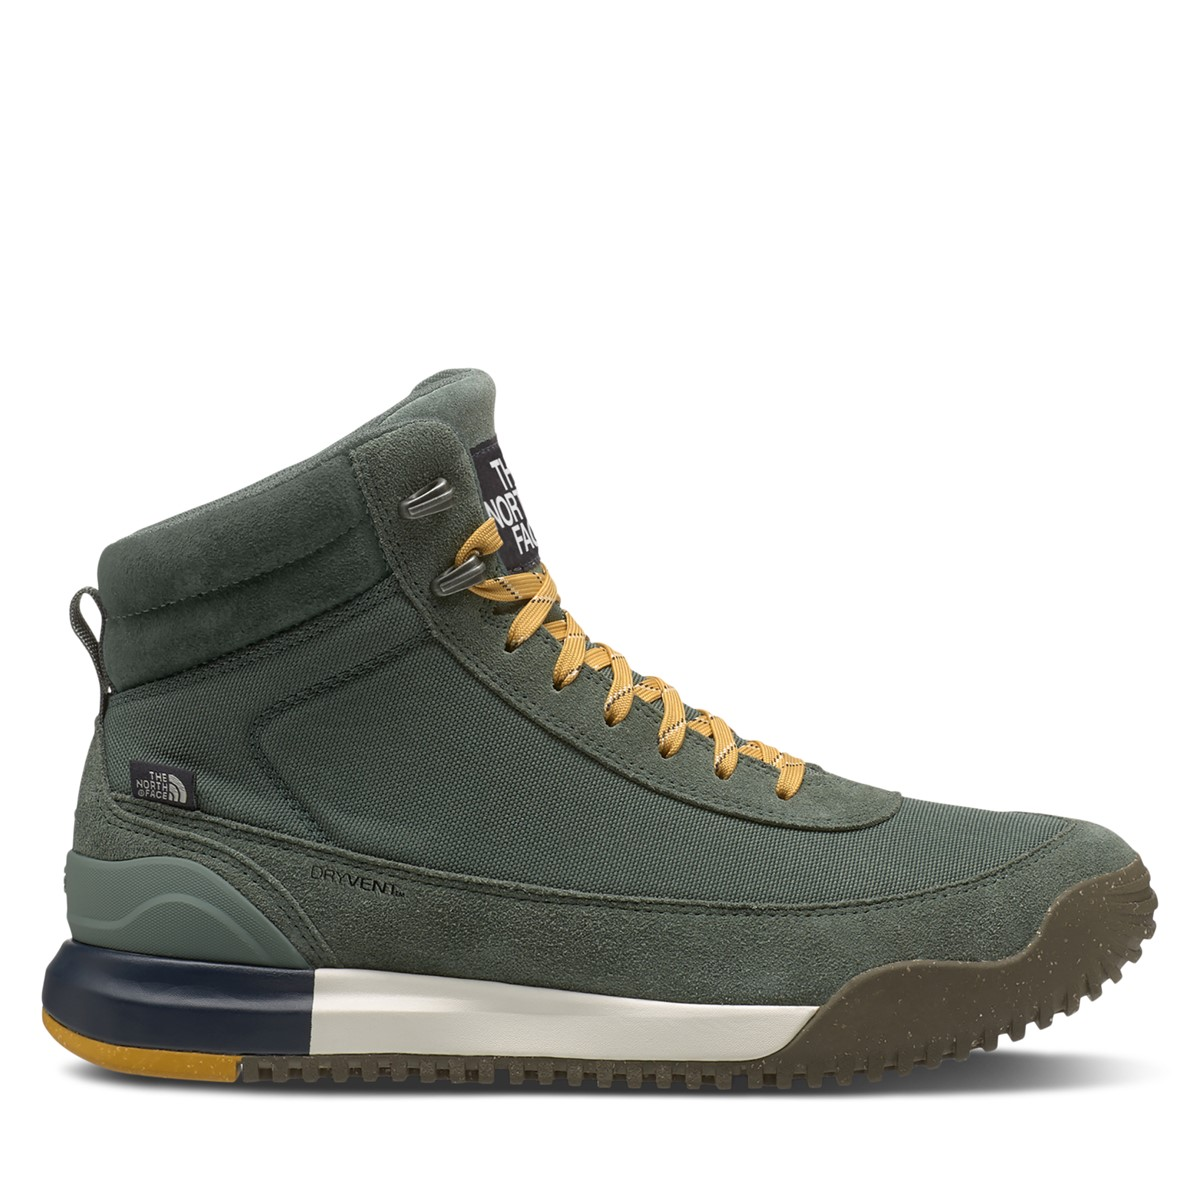 Men's Back to Berkeley III Textile WP Boots in Green